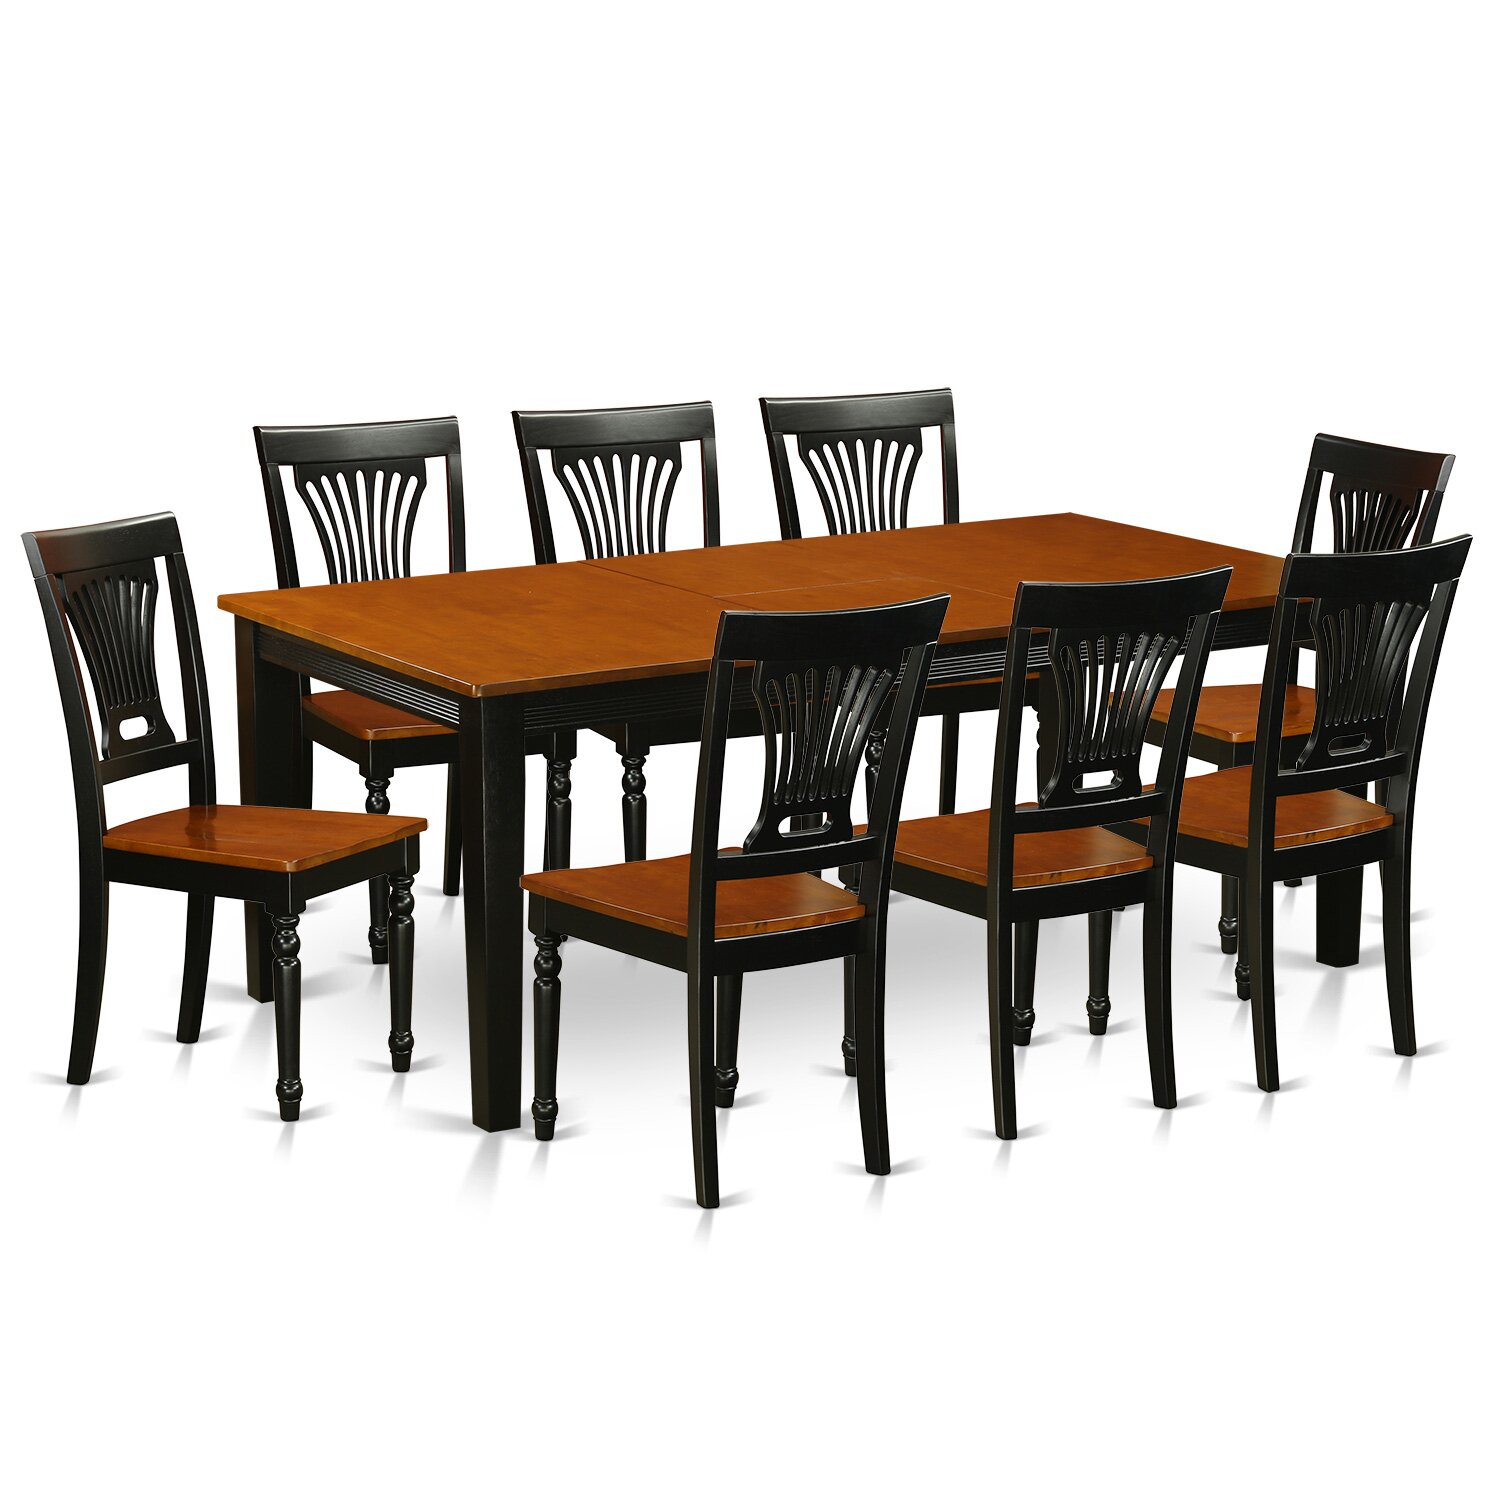 Wooden importers quincy 9 piece dining set wayfair for Jardin 8 piece dining set